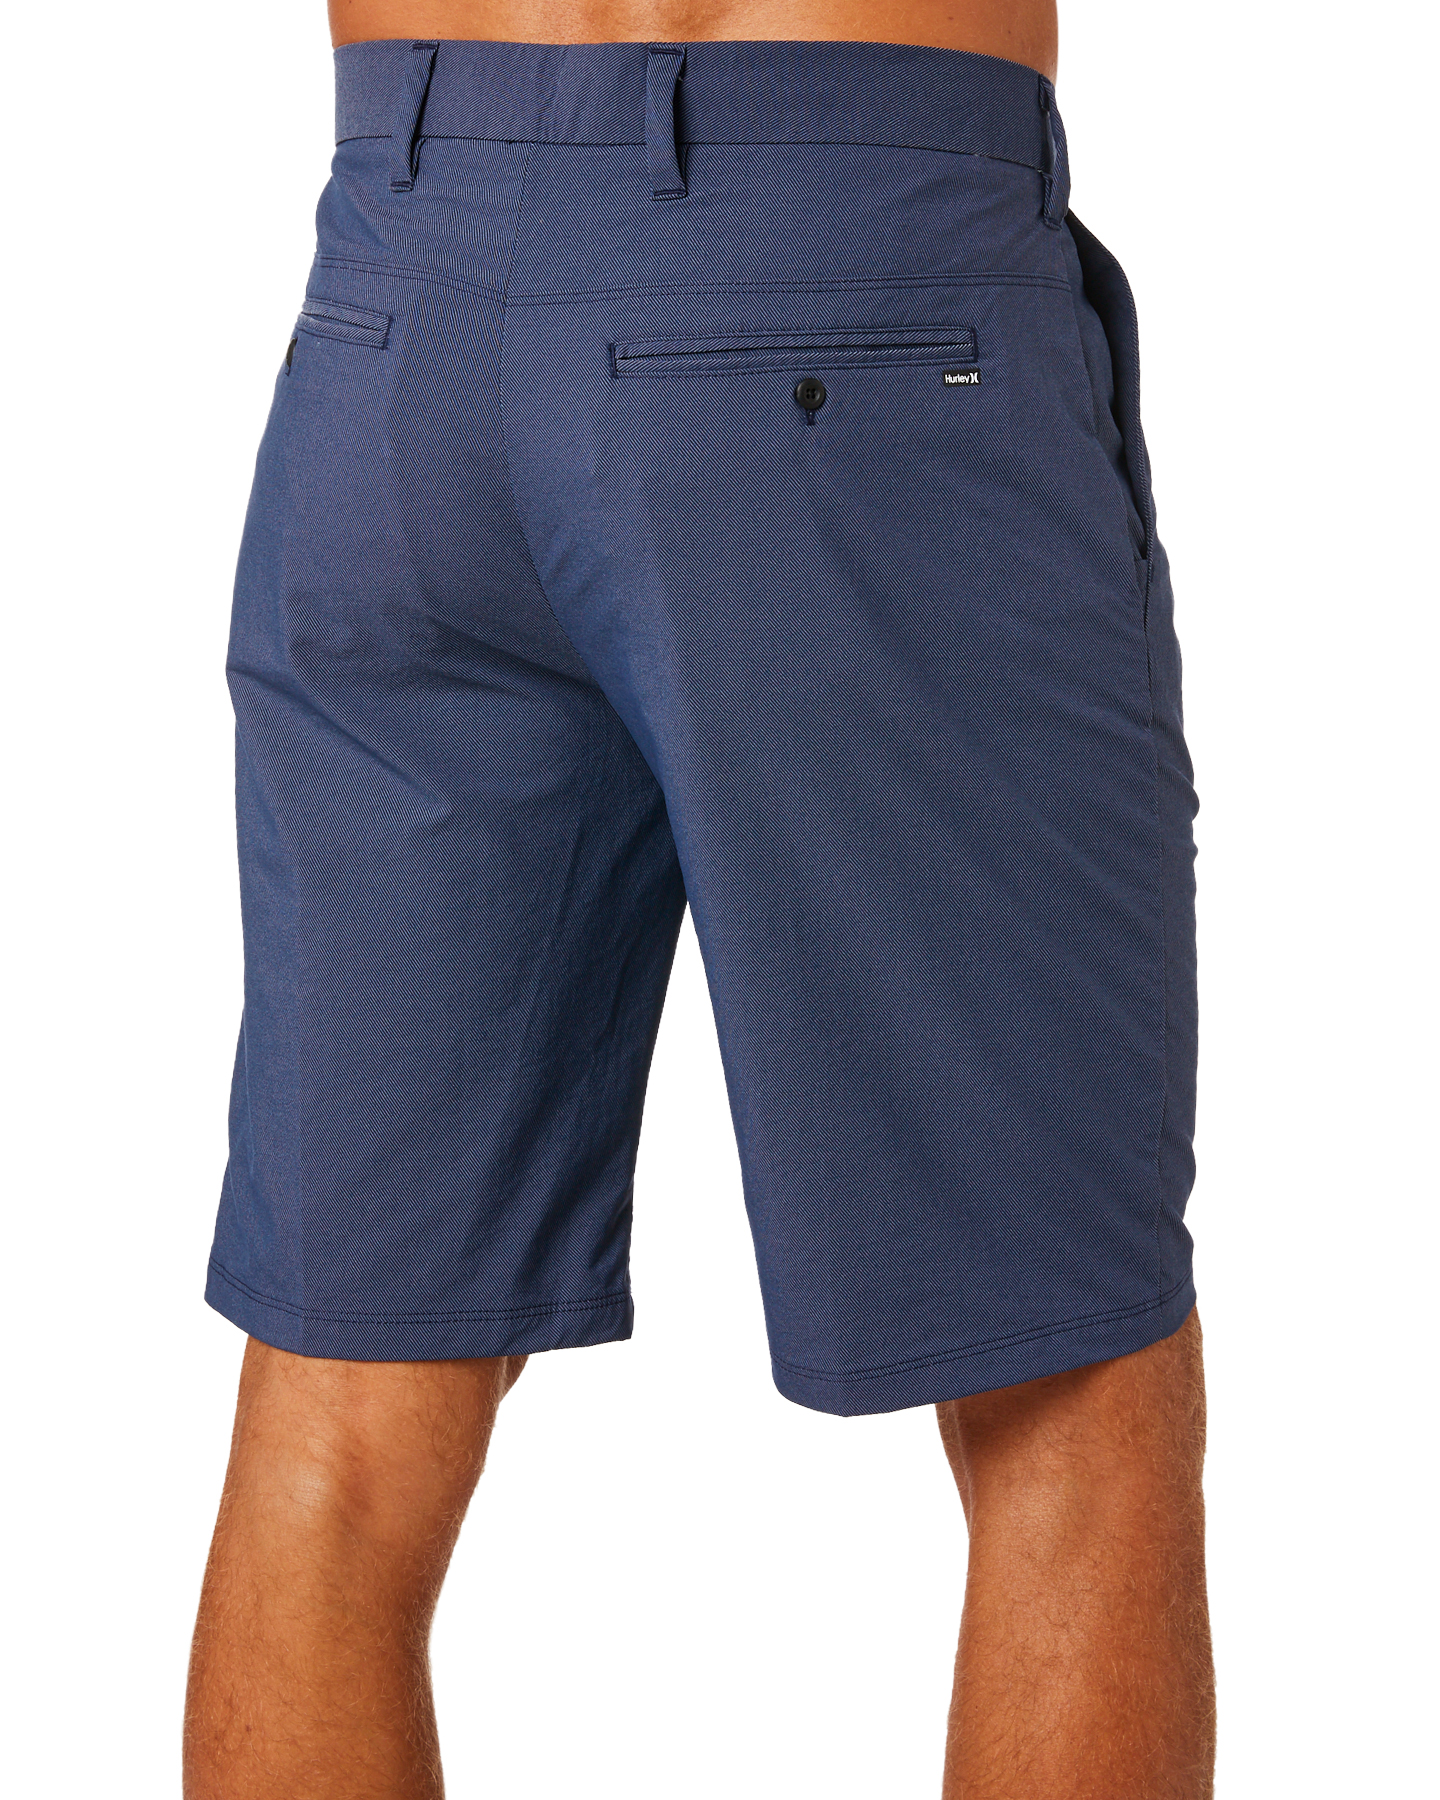 New-Hurley-Men-039-s-Dri-Fit-Chino-Short-21In-Mens-Short-Fitted-Spandex-Grey thumbnail 19